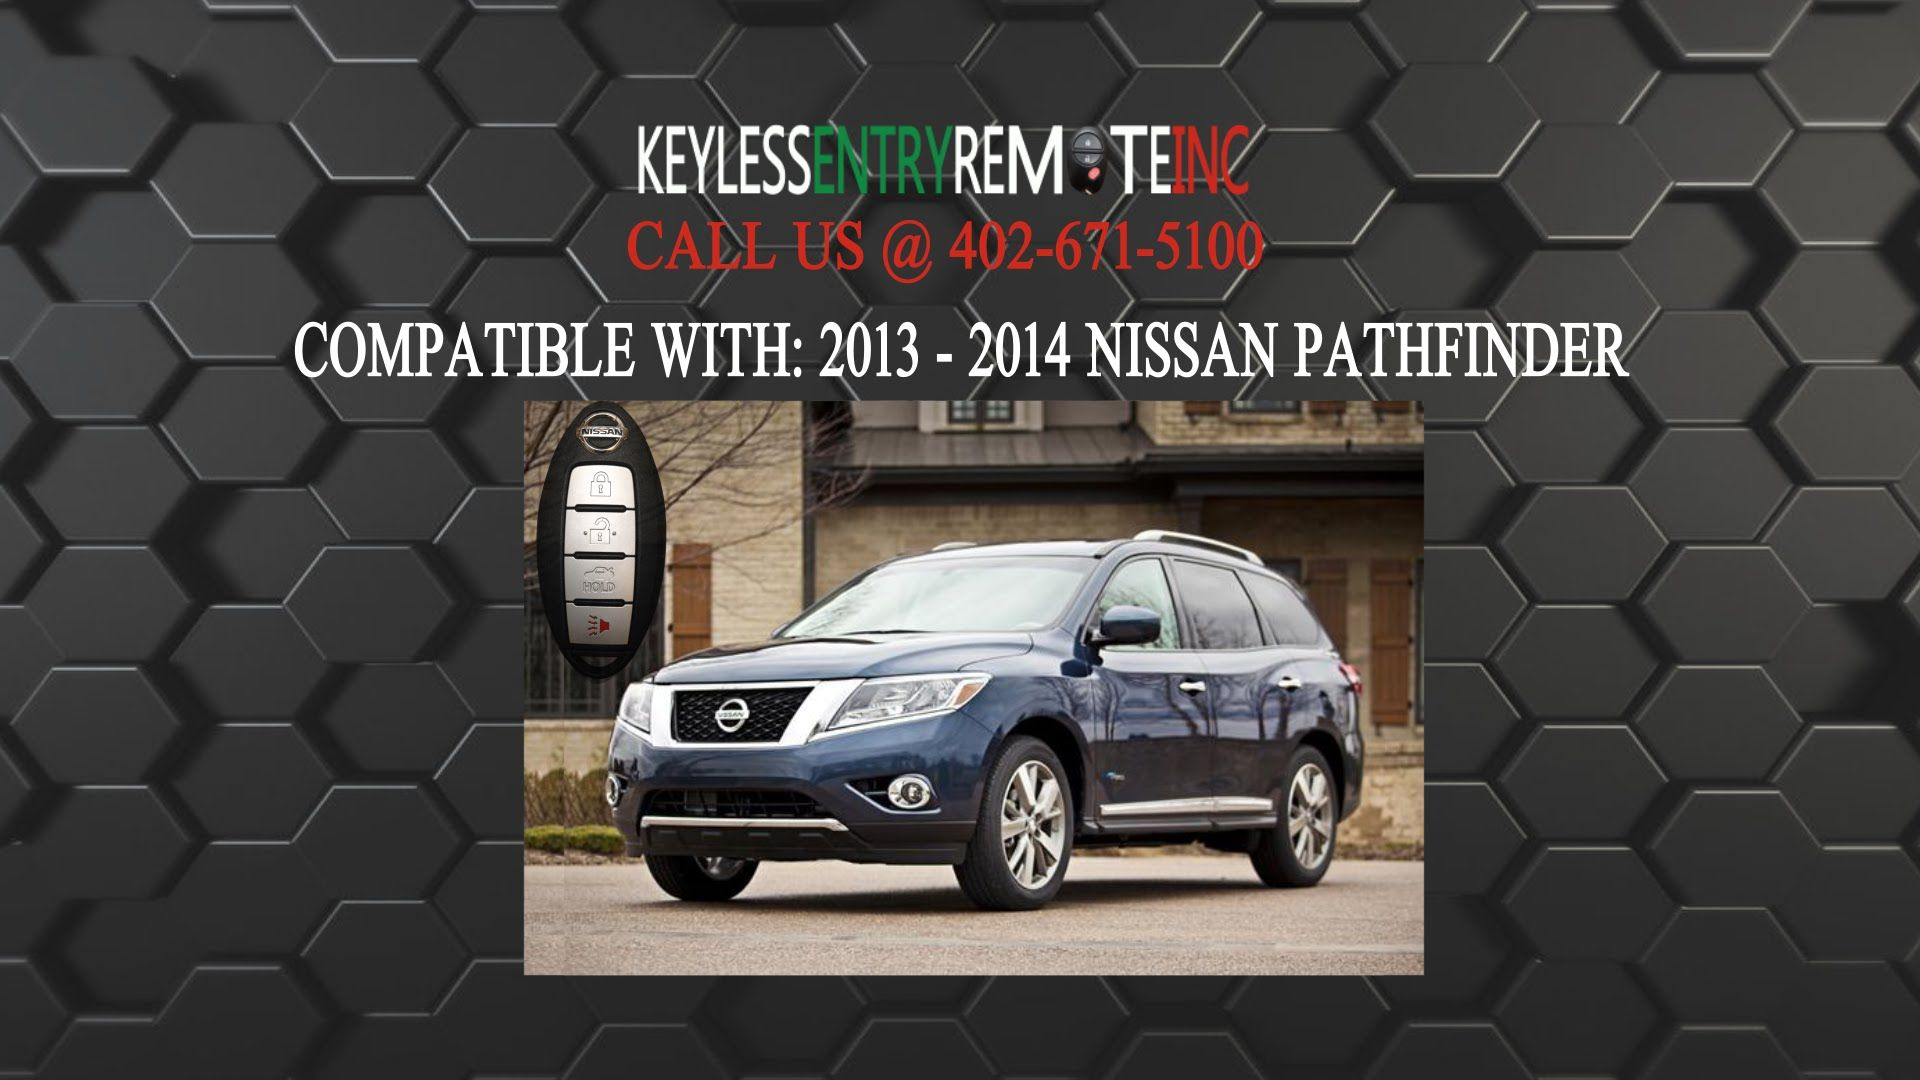 How To Replace A 2013 Nissan Pathfinder Key Fob Battery